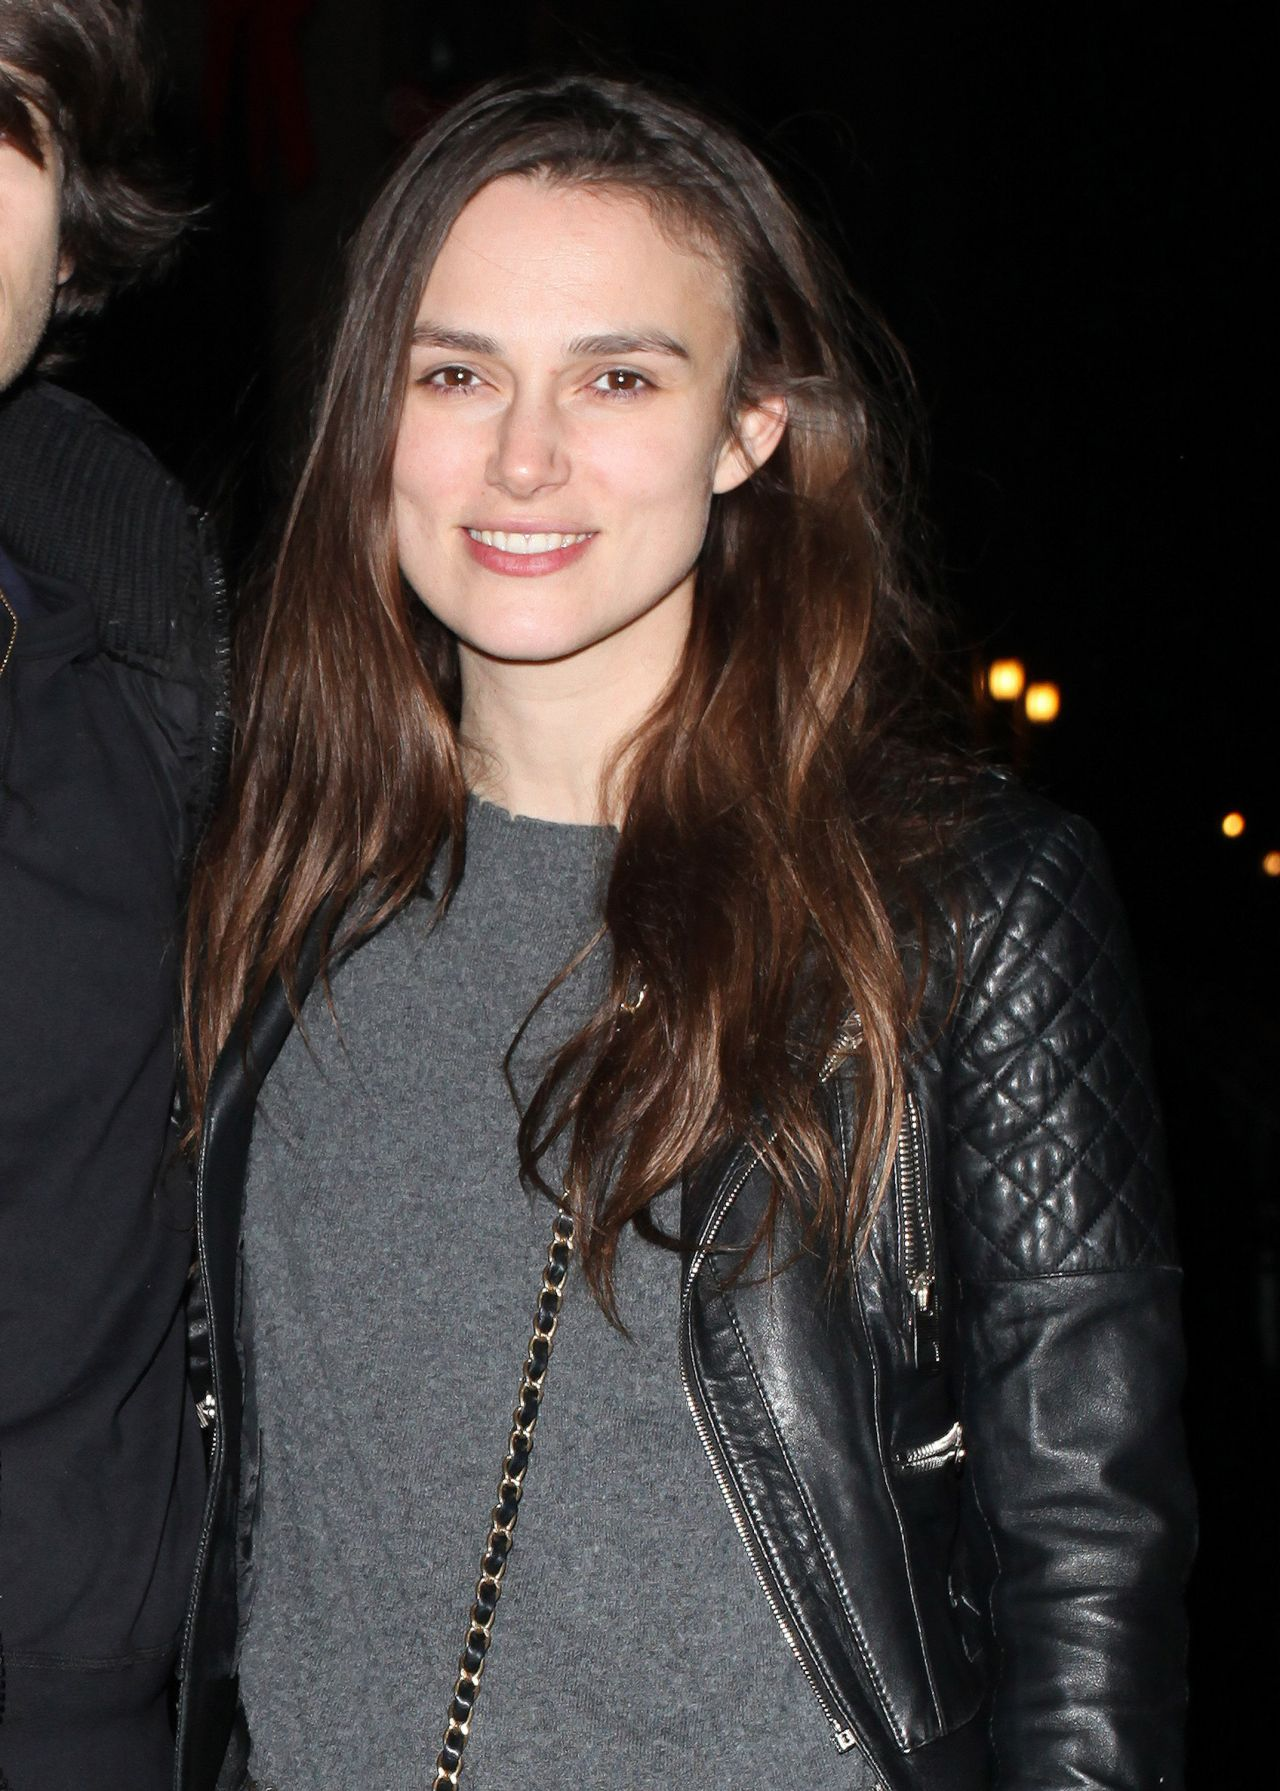 Keira Knightley – Out in New York City, NY February 2016 Keira Knightley